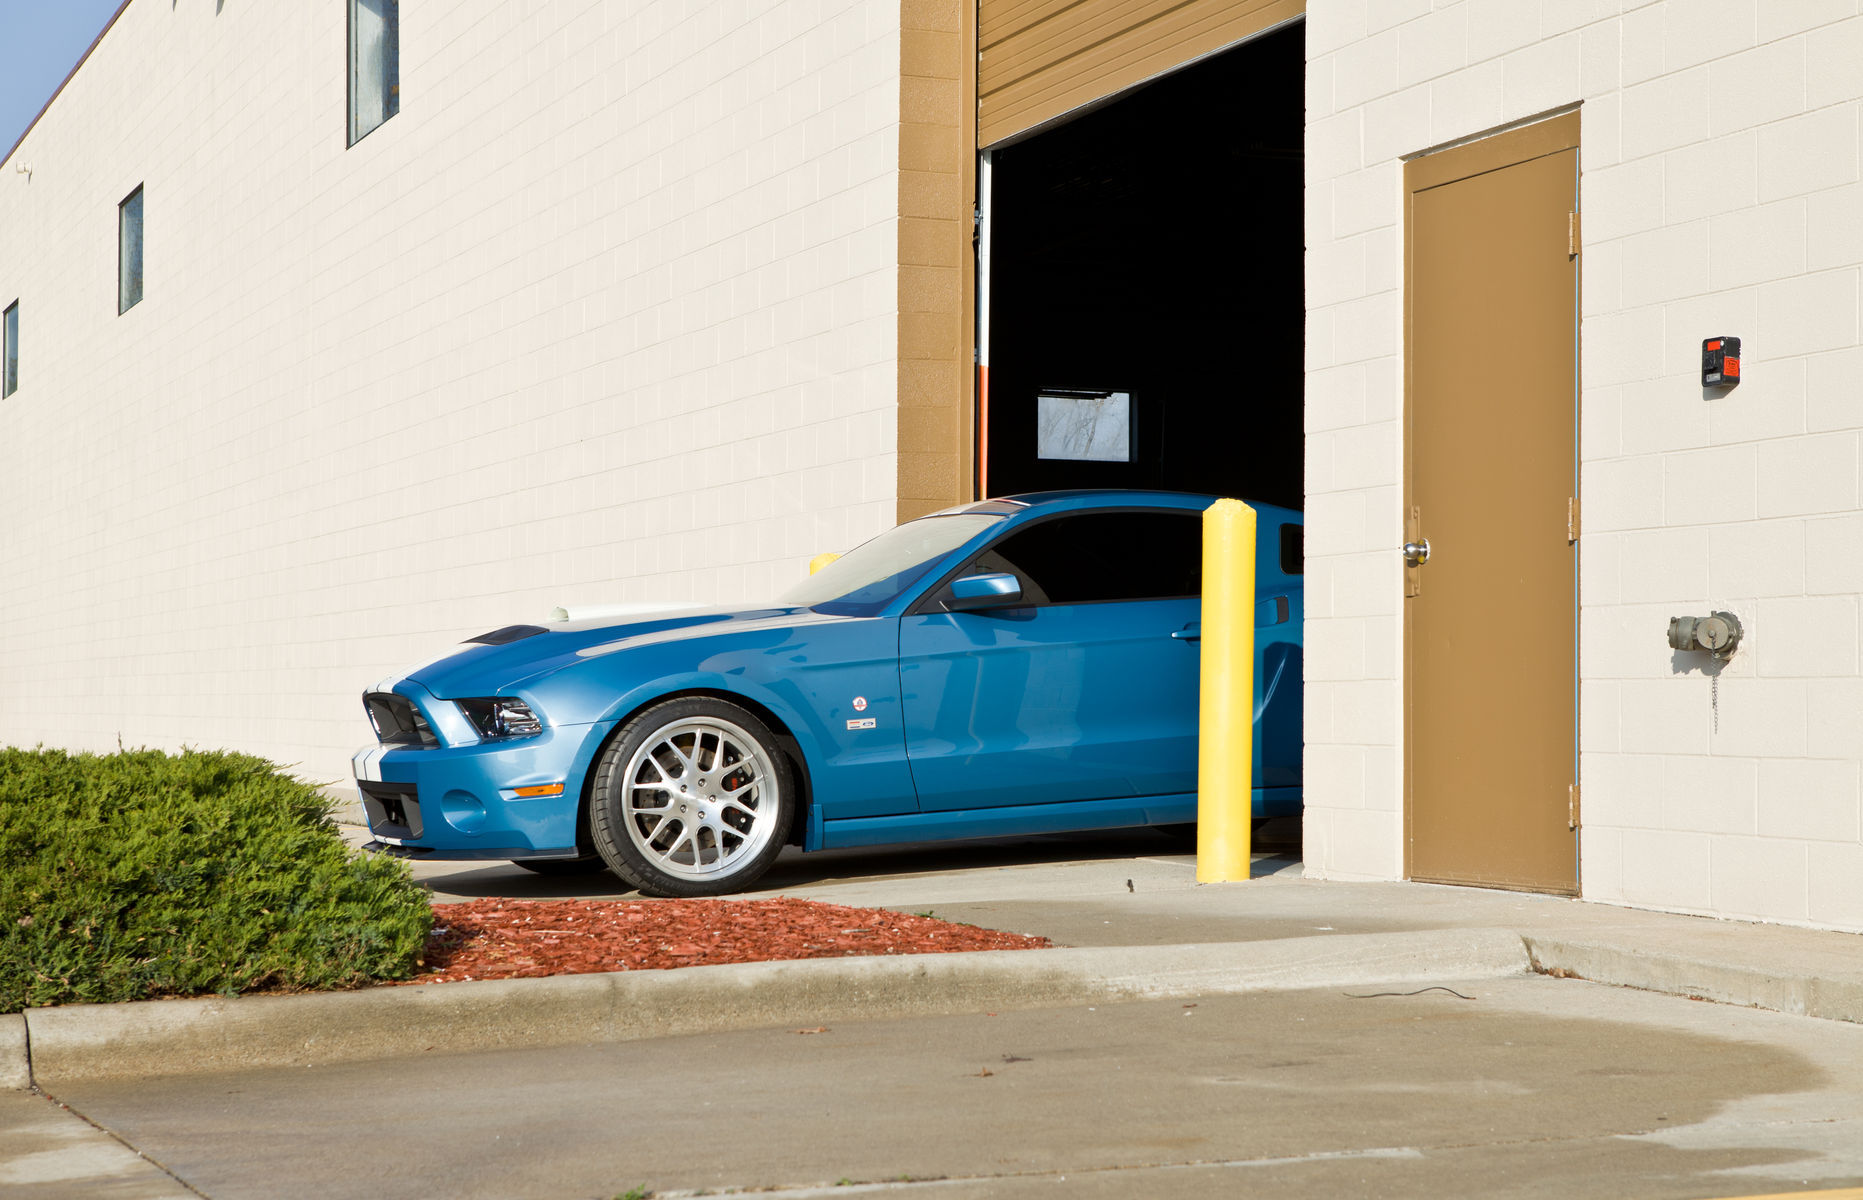 2013 Ford Shelby GT500 | 2013 Carroll Shelby Tribute